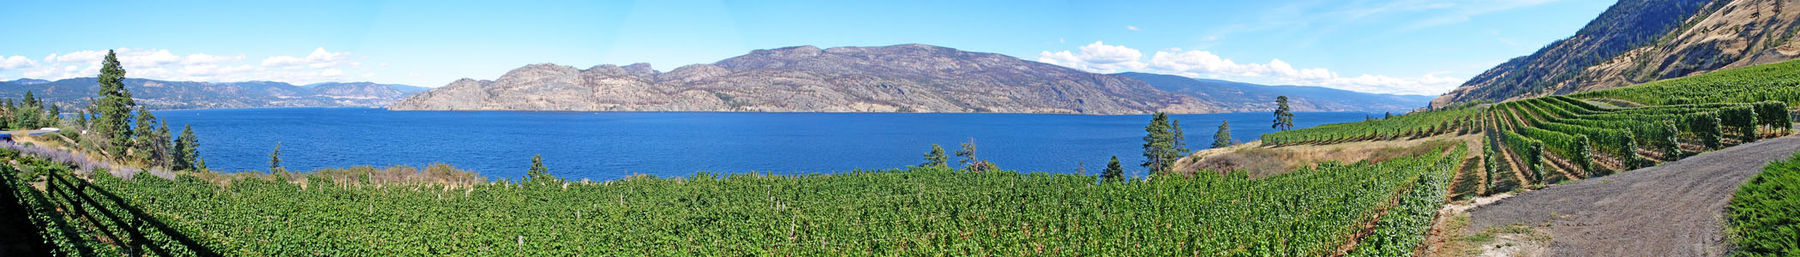 Okanagan banner Greata Vineyard view.jpg